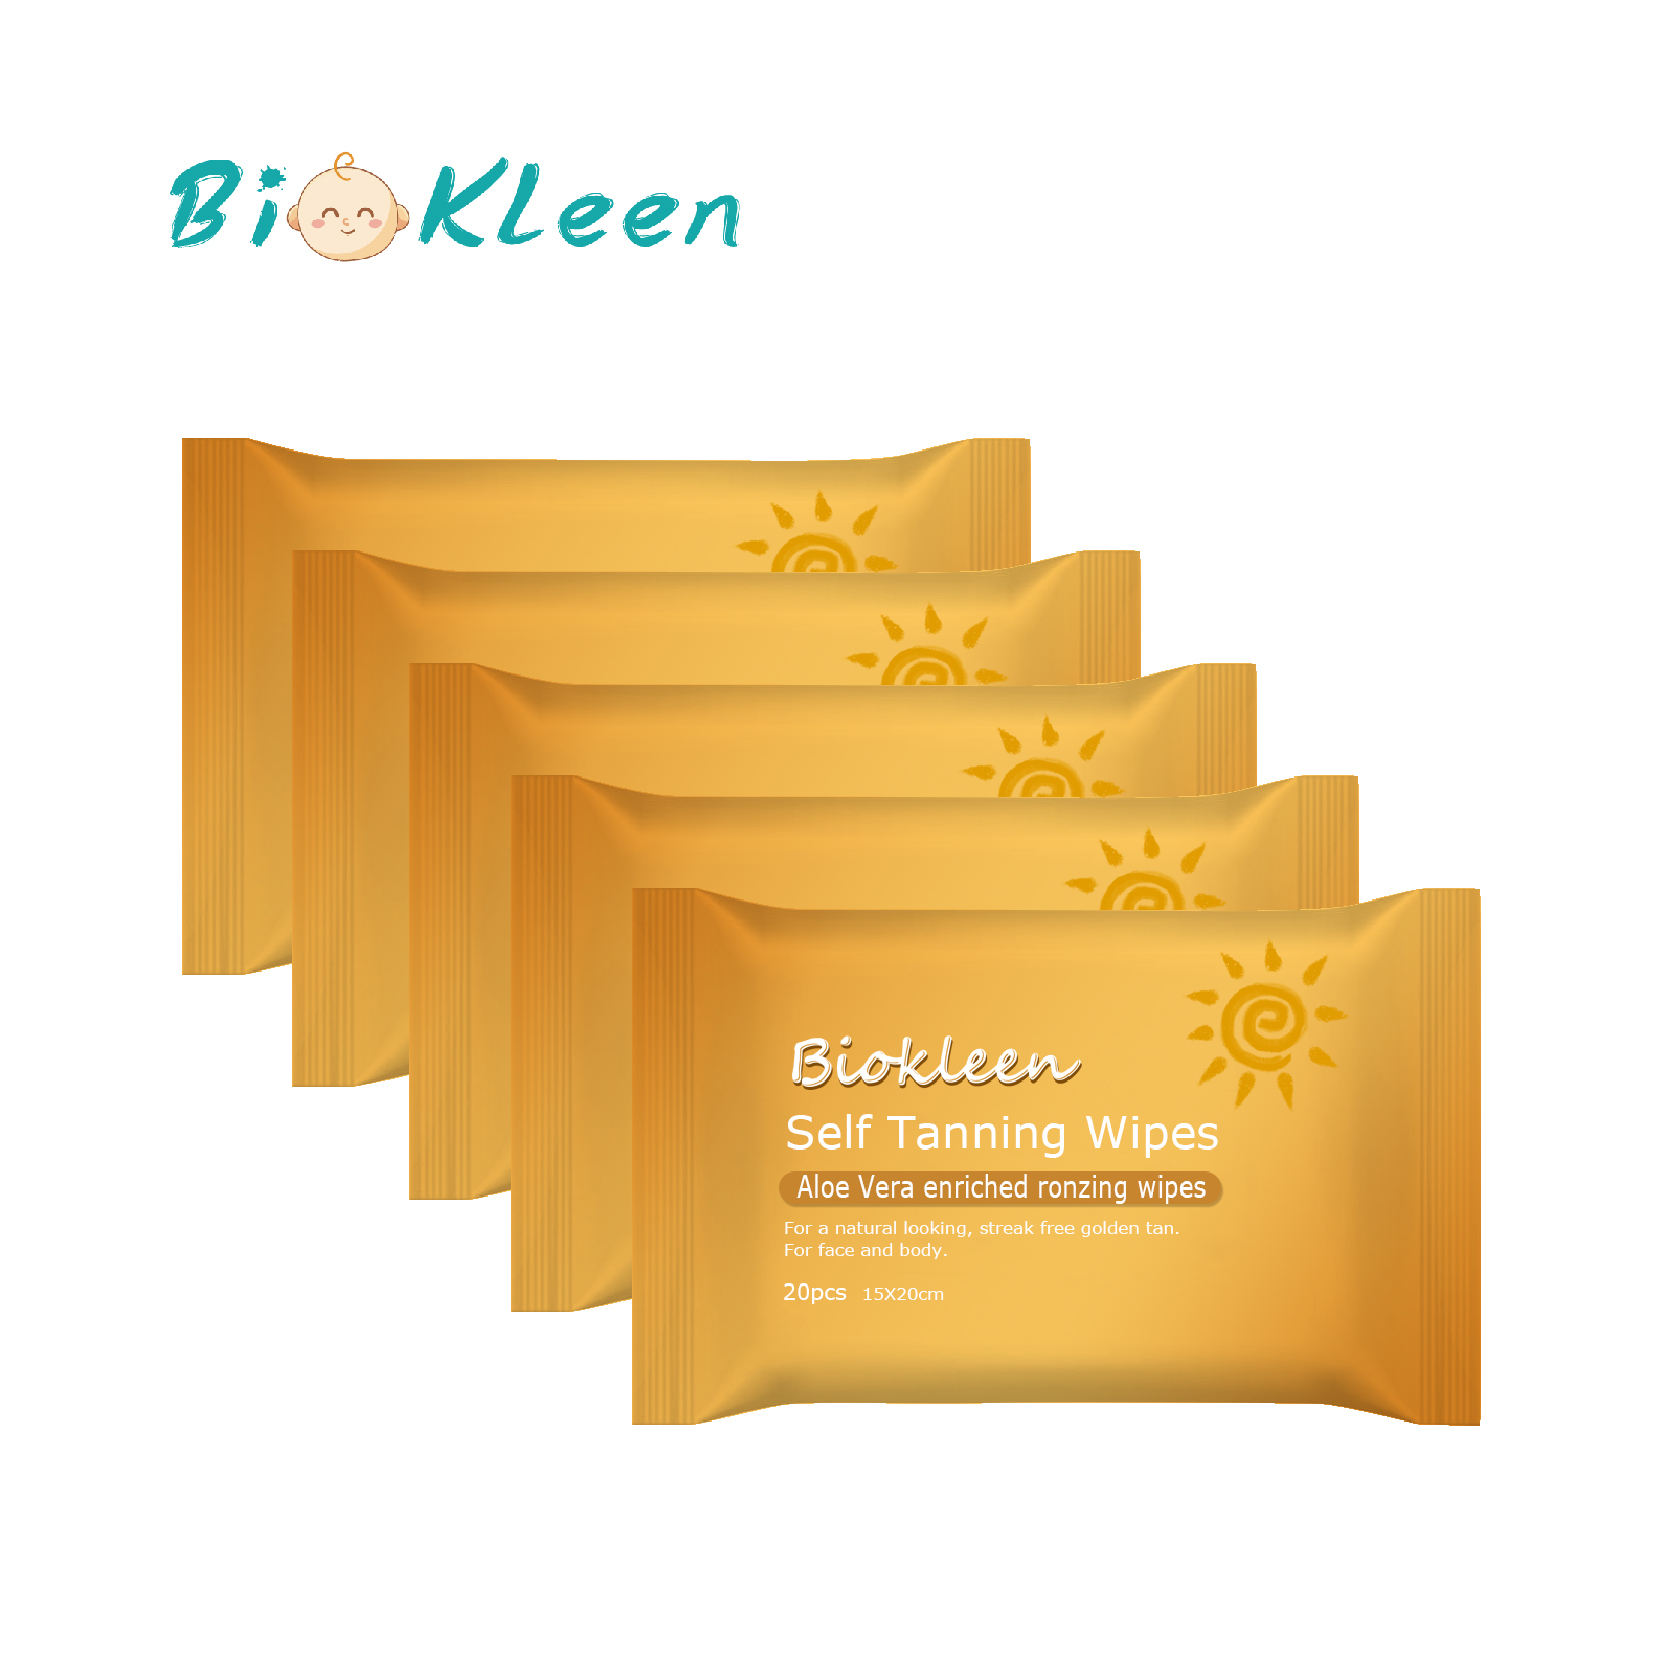 Biokleen Latest Innovative 100% Flushable Tanning Wet Wipe, Wholesaler Price 100% Flushable Self Tan Wipes